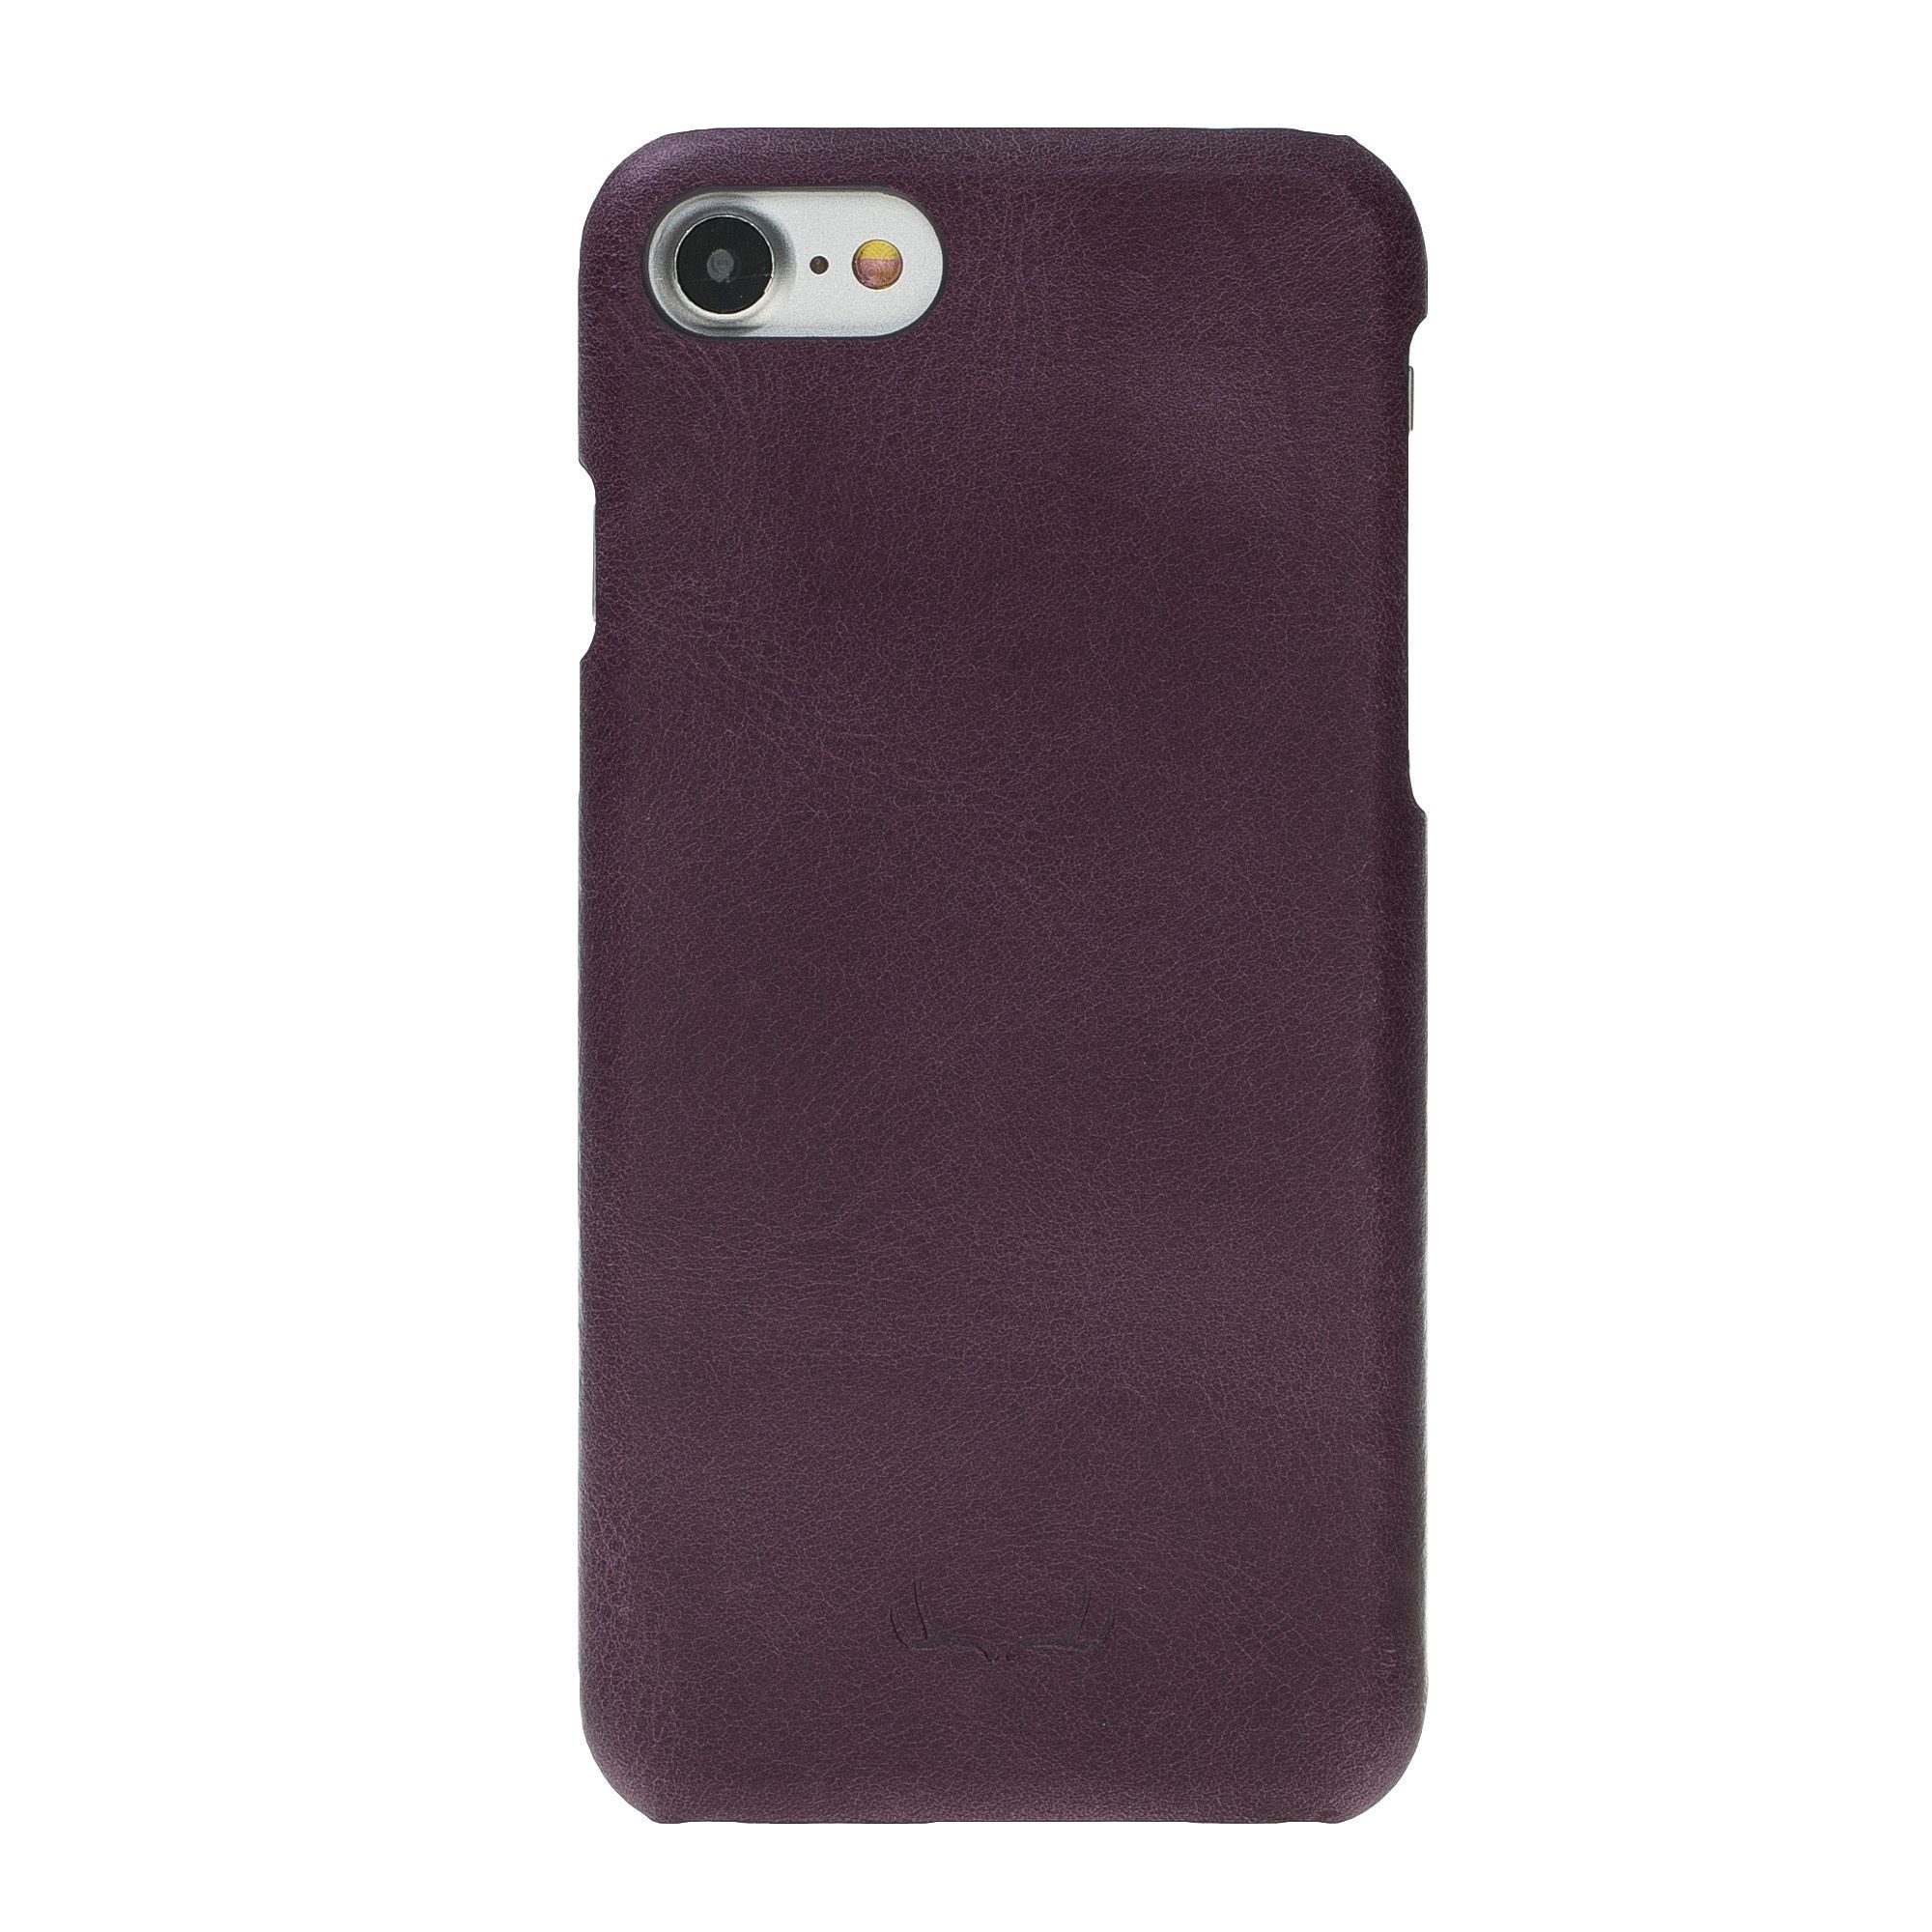 BNT Ultimate Jacket Leather Cases - Crazy - iPhone 7/8 - Purple